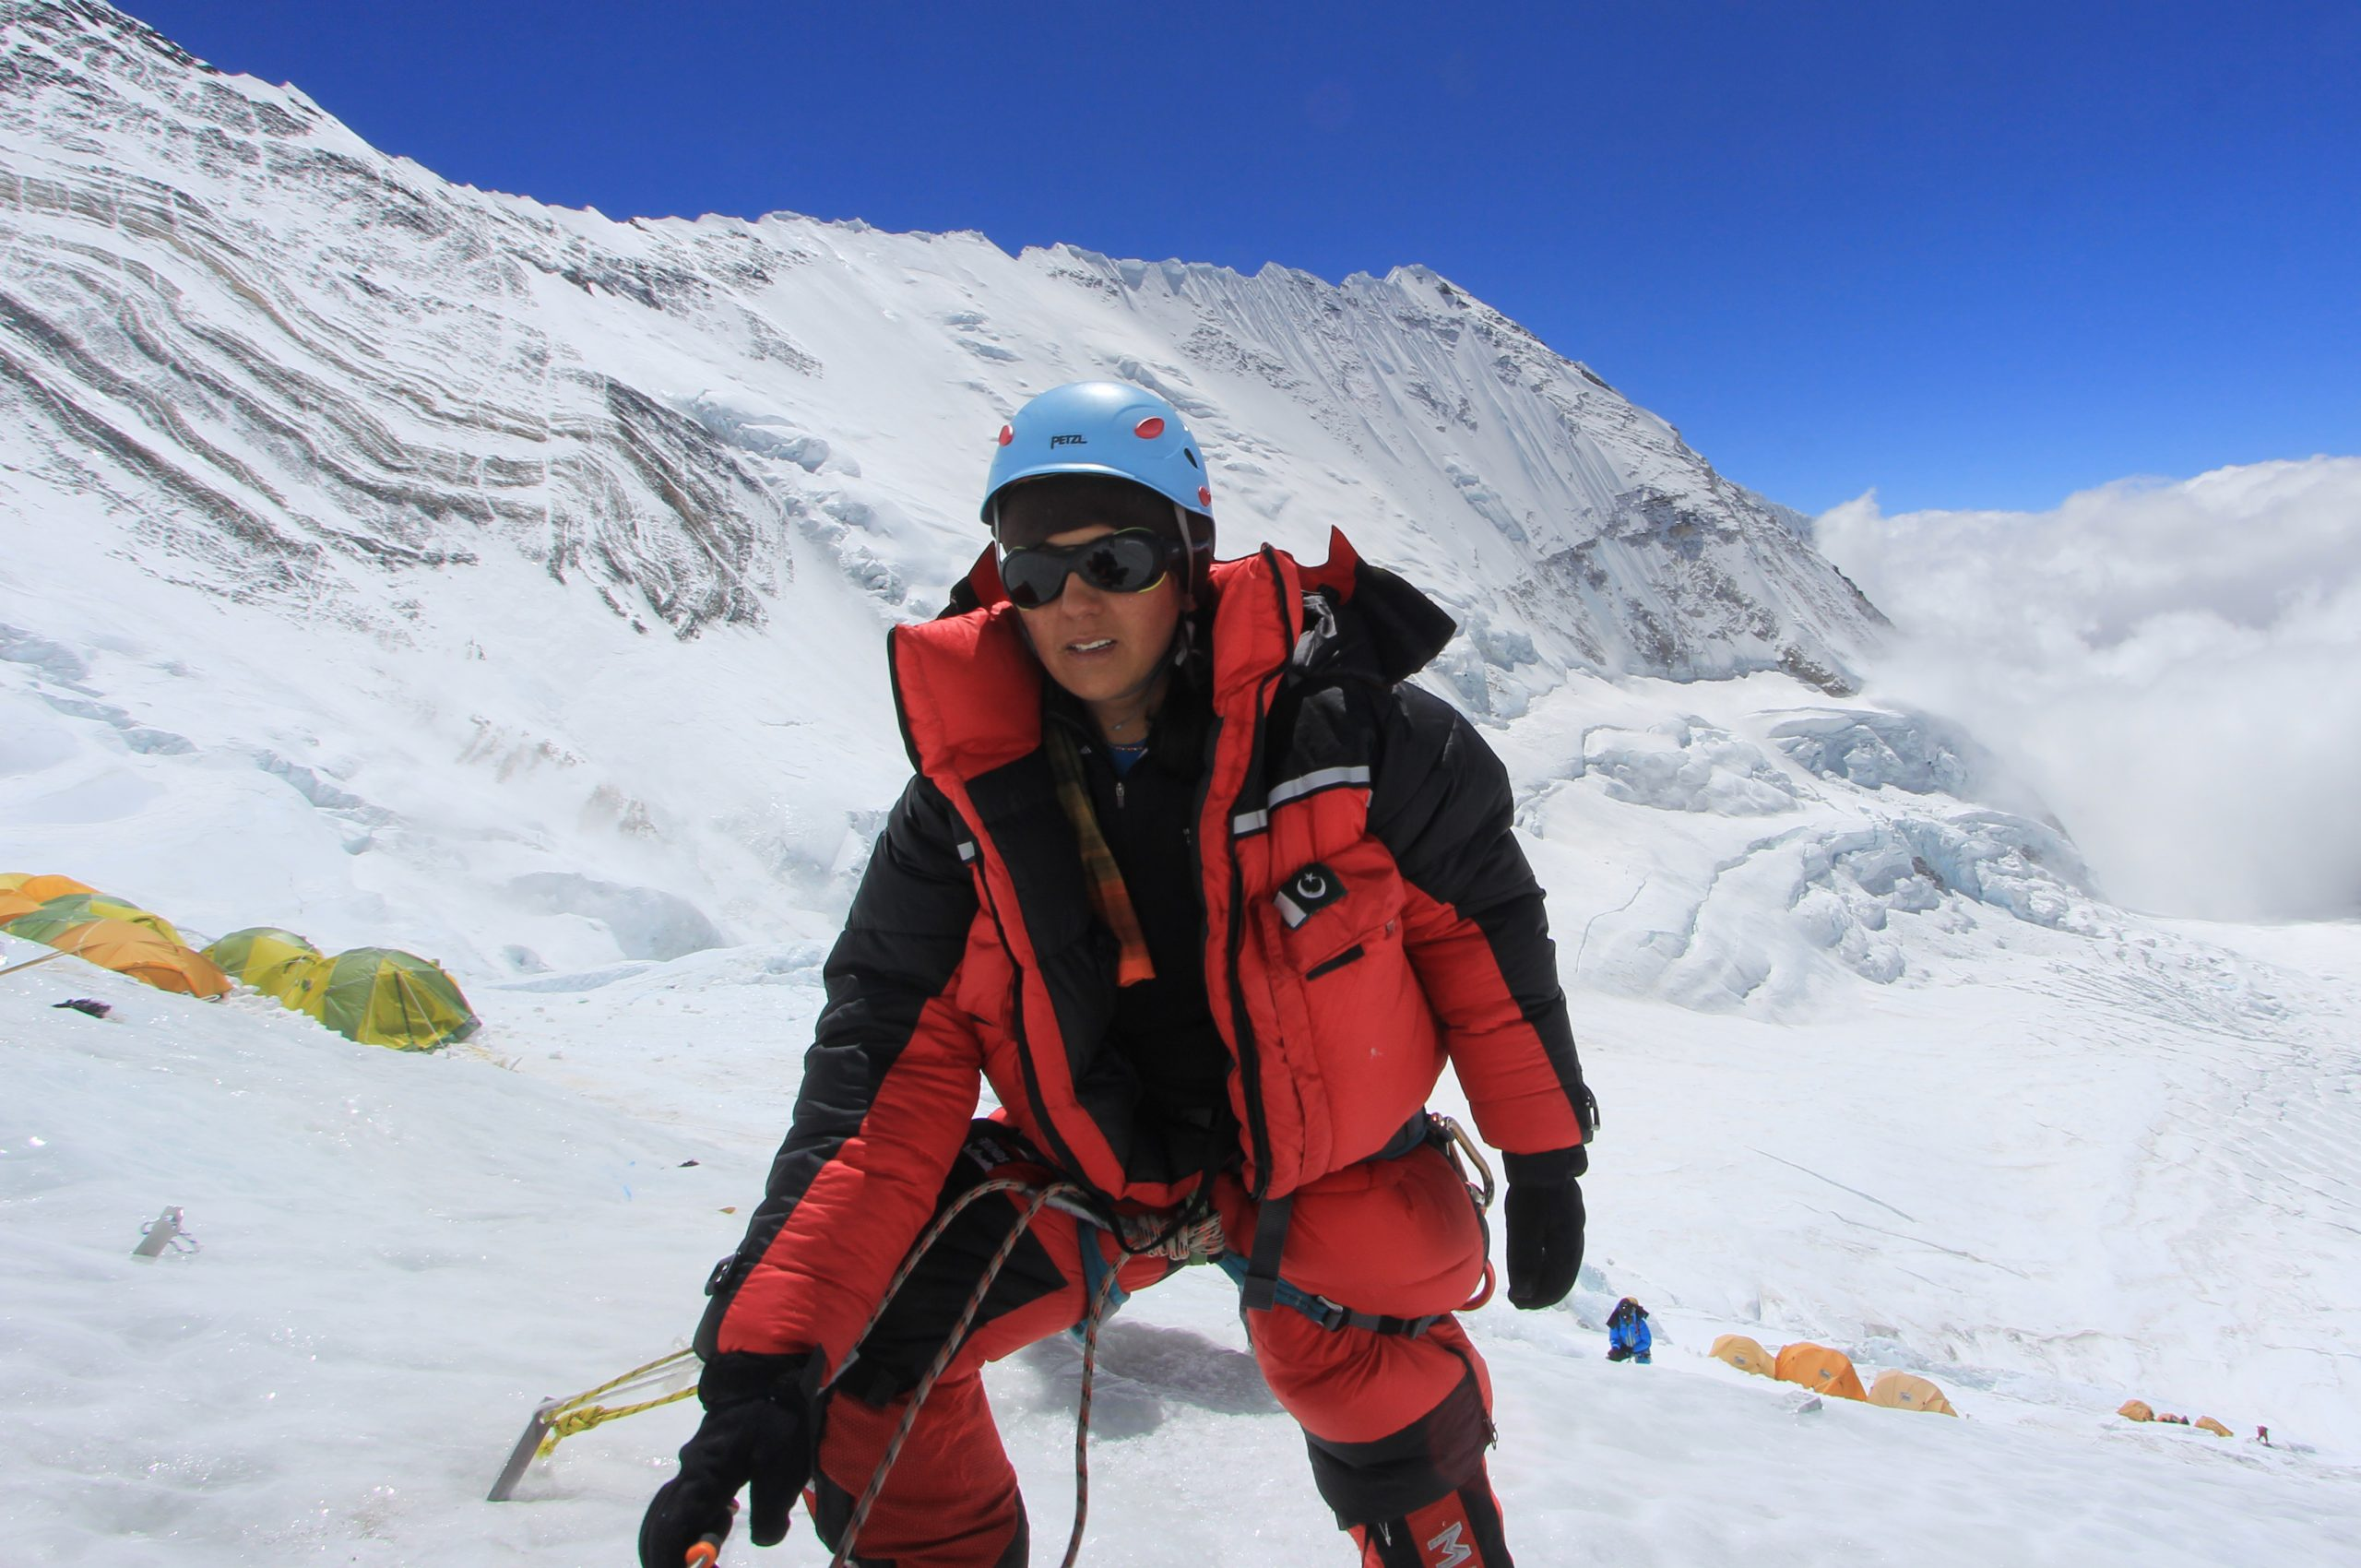 Samina Baig embarks on the journey to the world's second highest peak, K2 - Daily Times